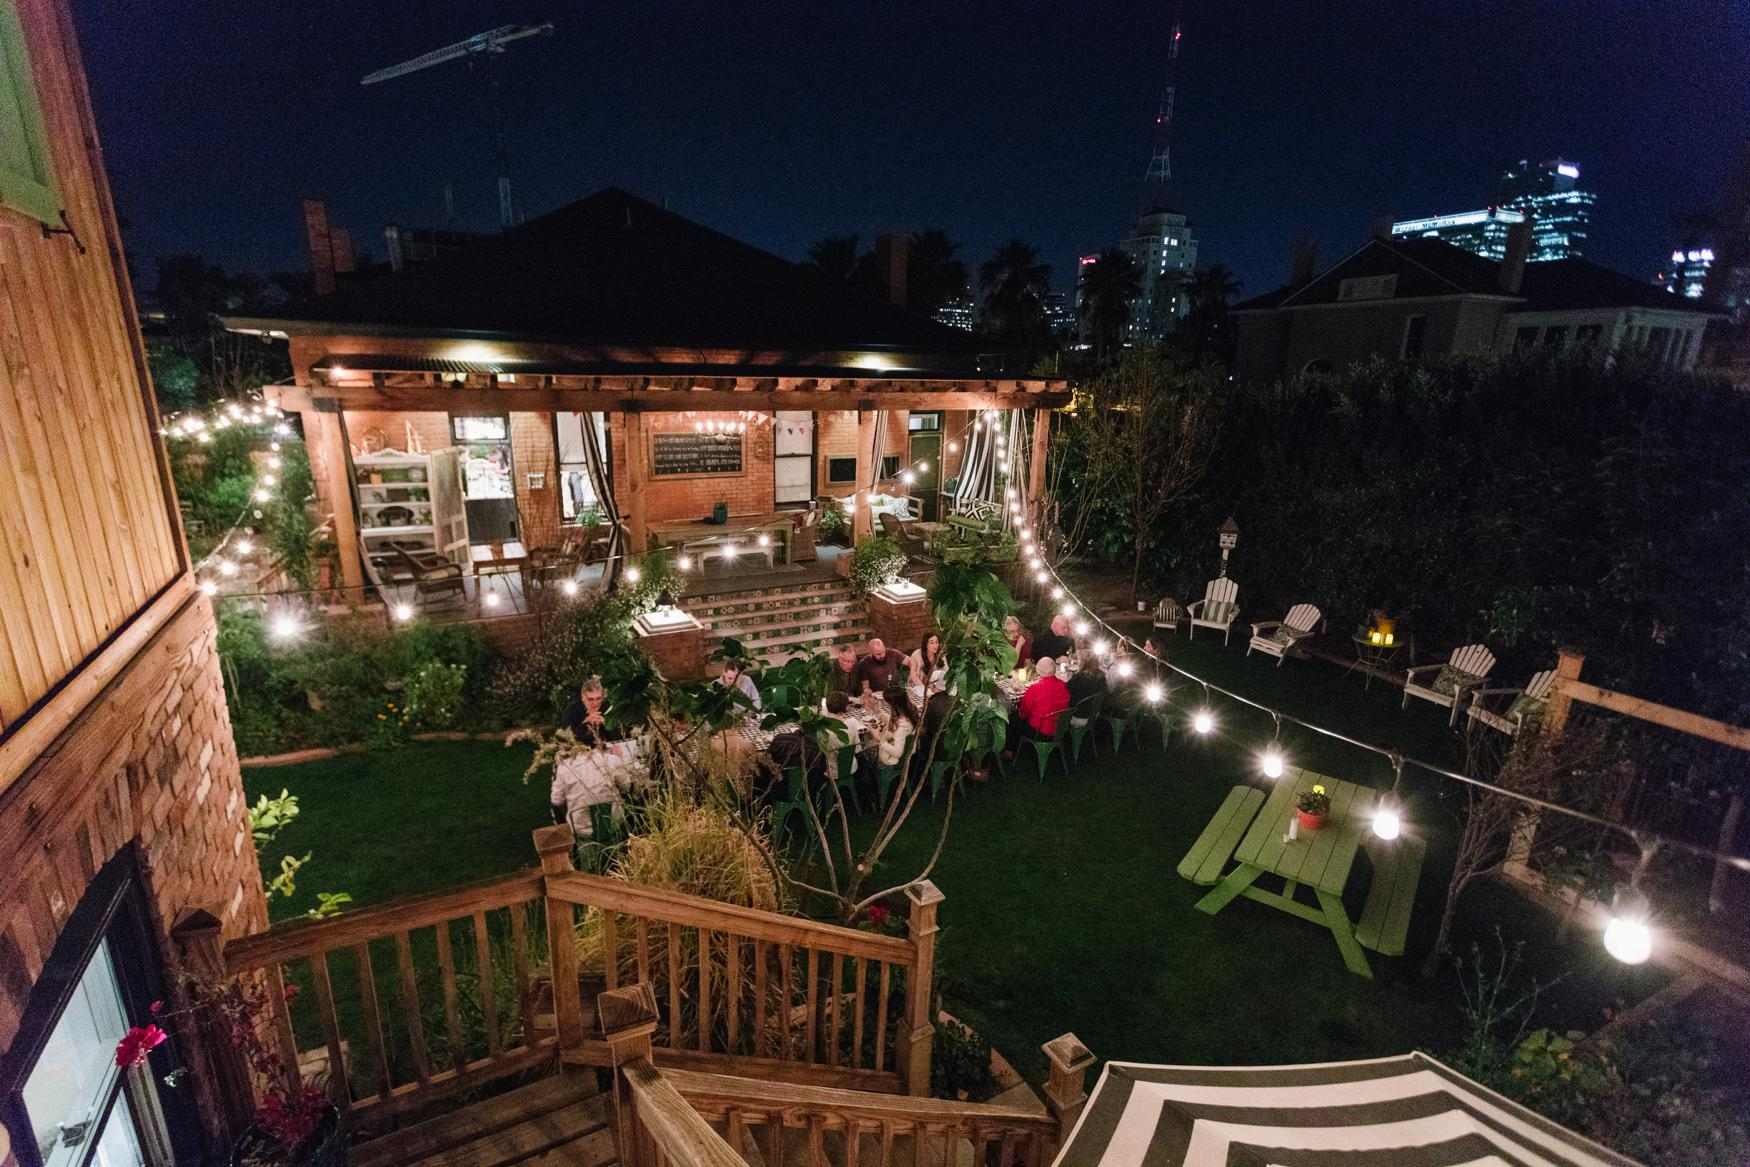 Boho Farm and Home Dinner theme Spain in backyard tapas. An evening under the stars with great company and food.